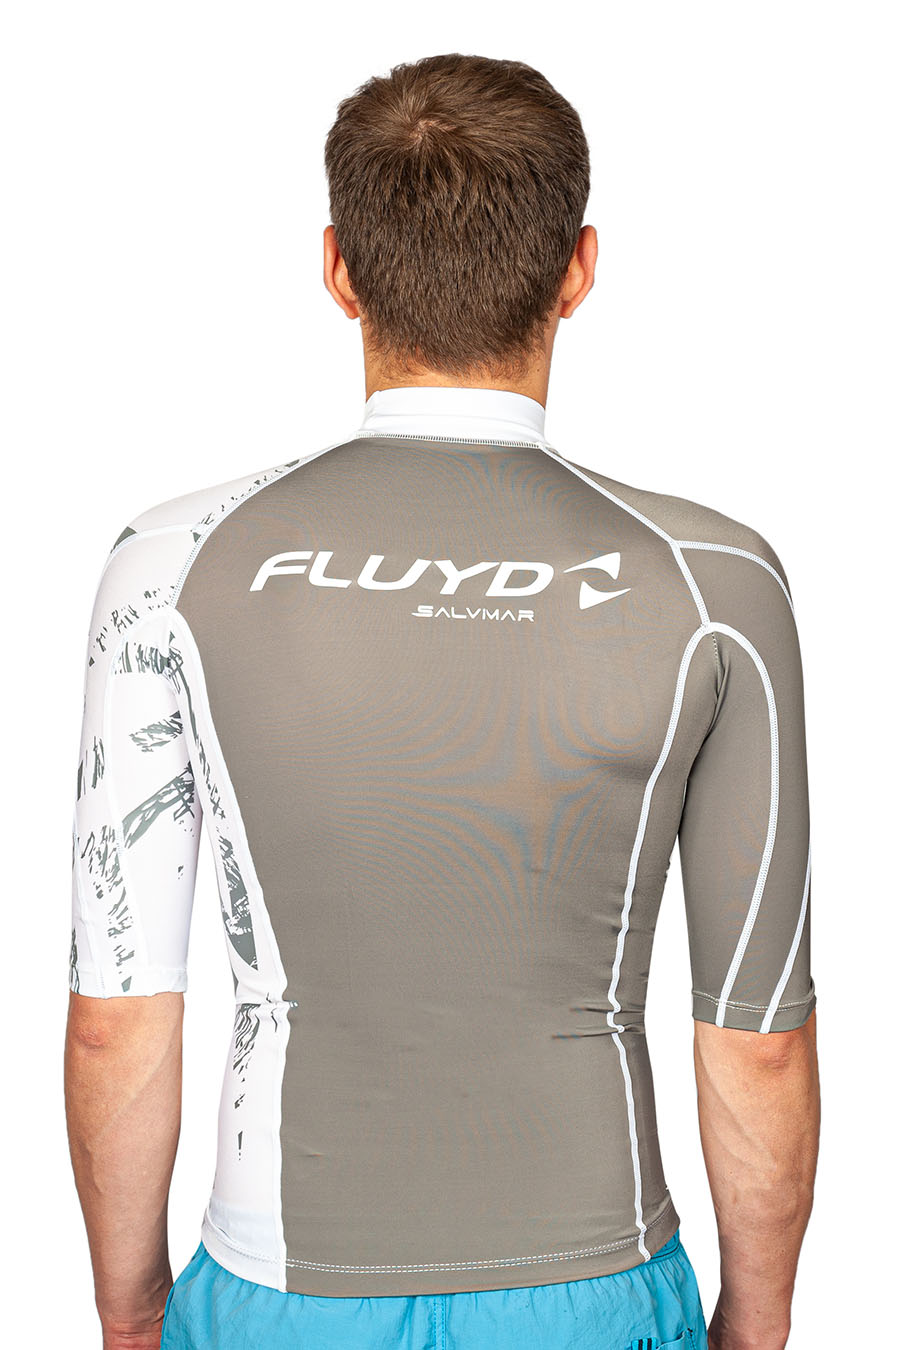 Футболка из лайкры FLUYD RASH GUARD man, L